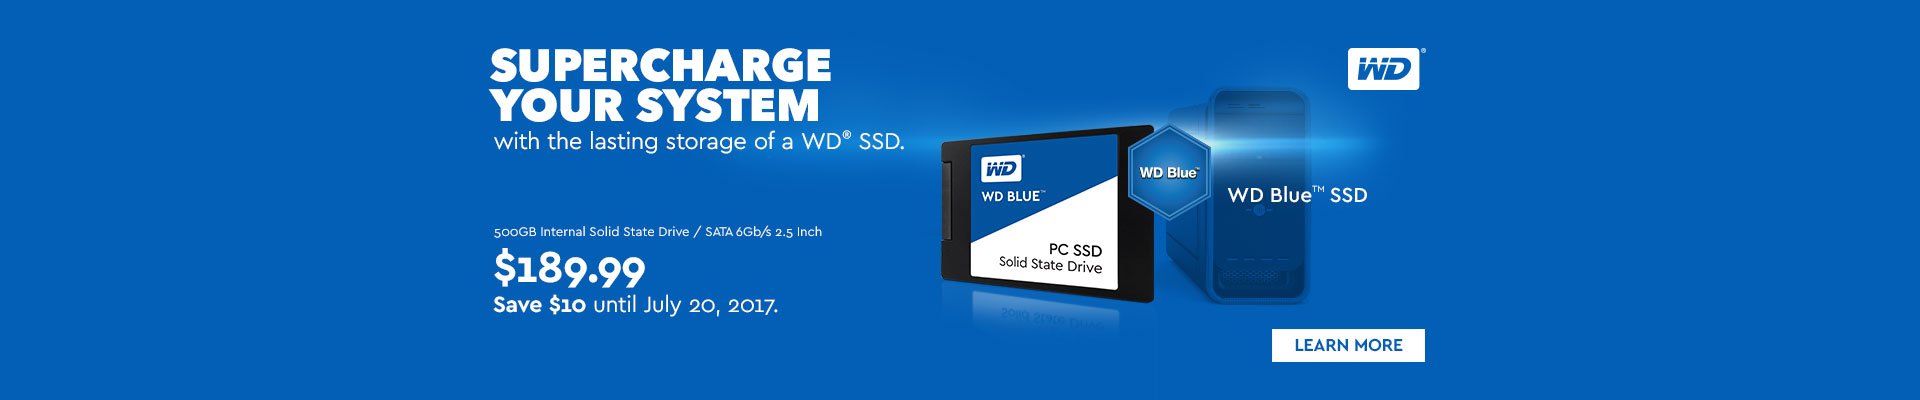 WD Blue 500GB Internal SSD